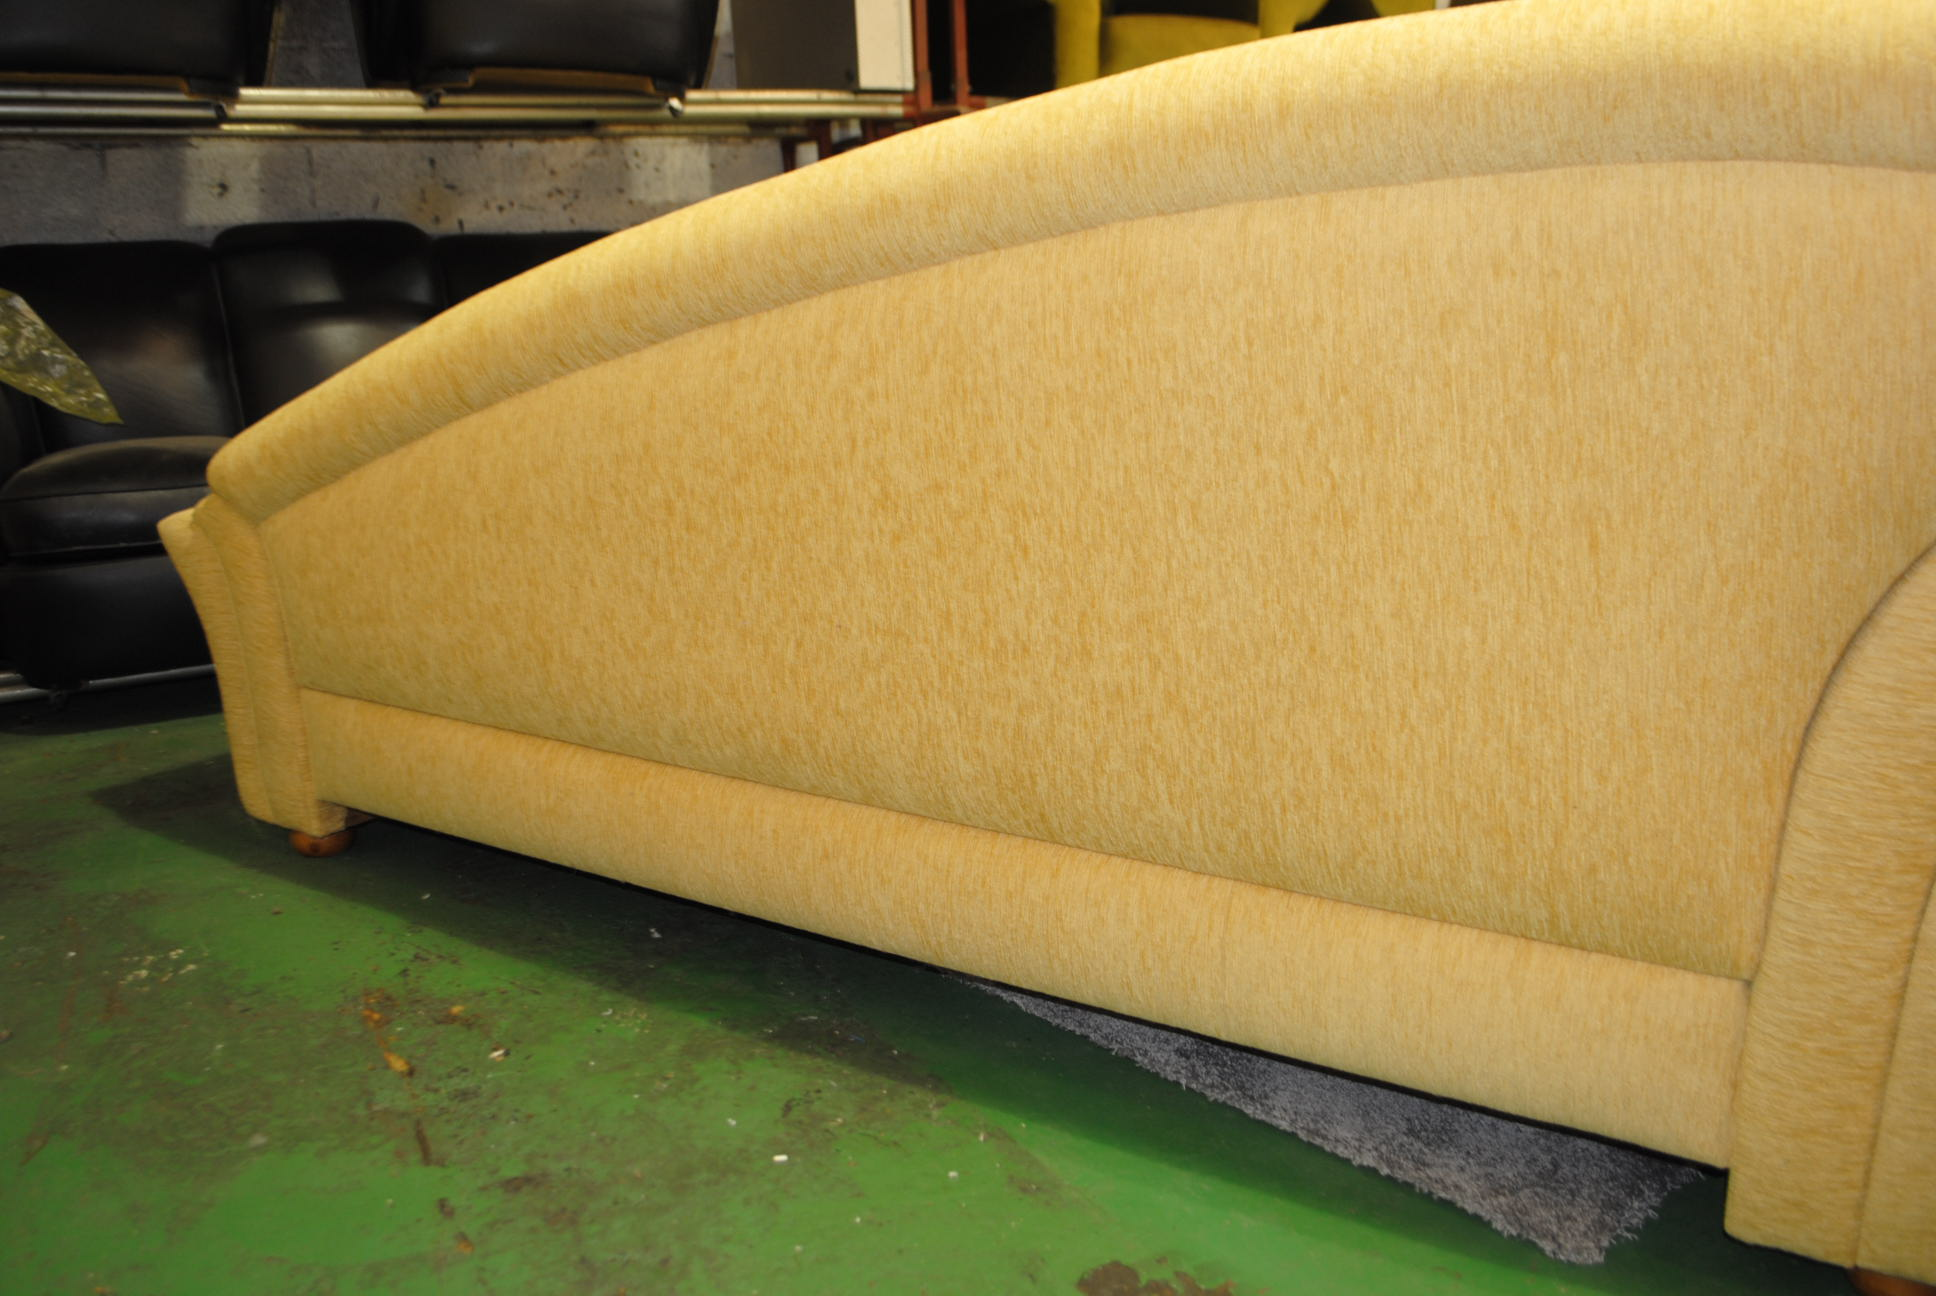 Large art deco chaise cloud 9 art deco furniture sales for Art deco chaise lounge